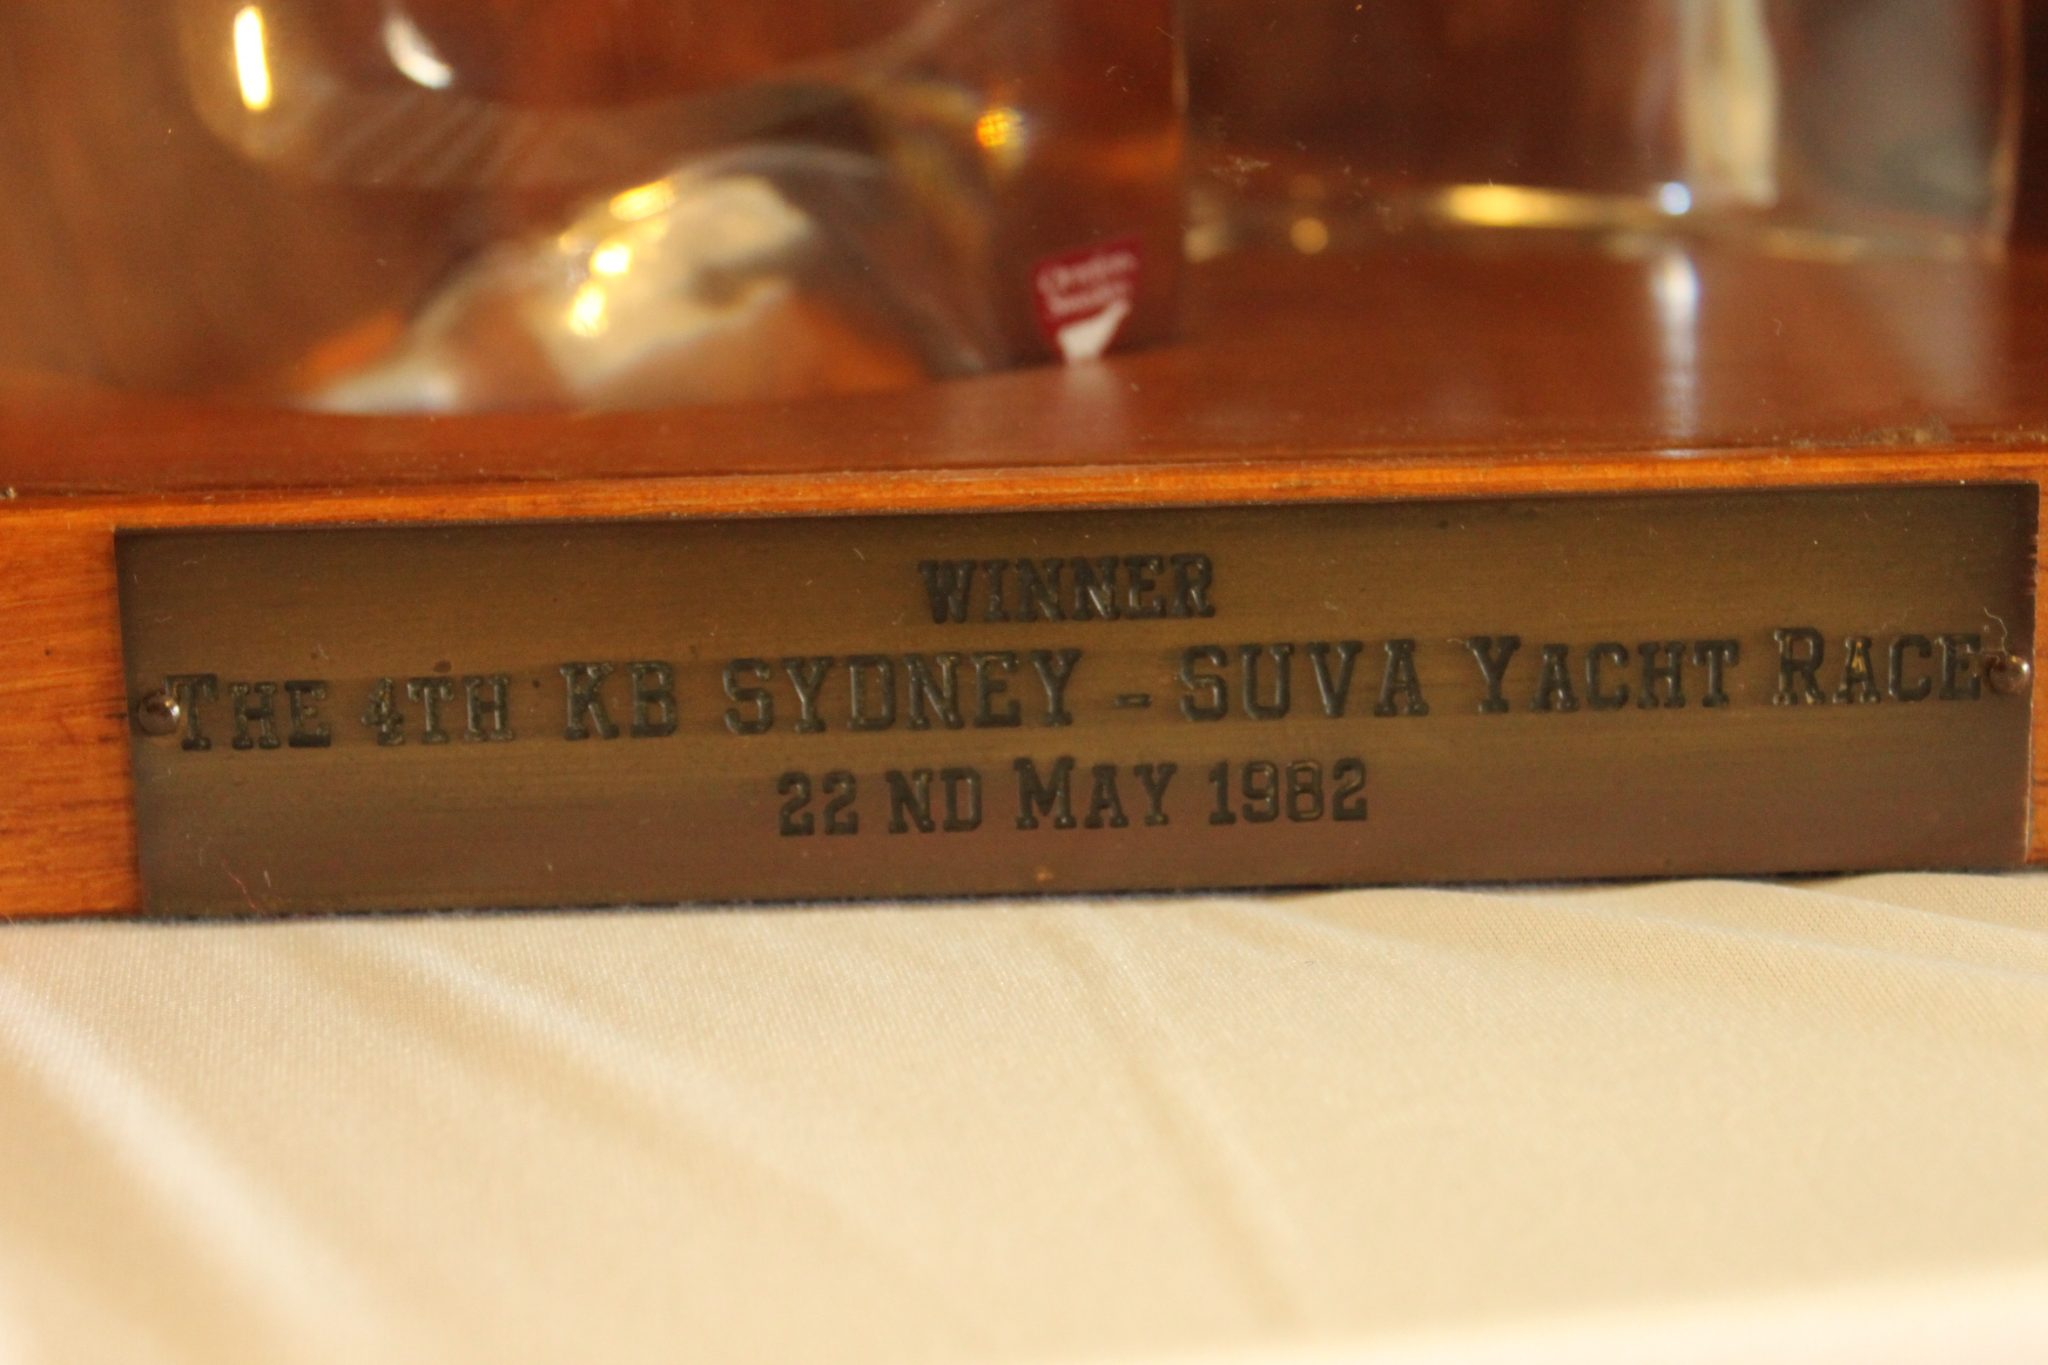 Sydney to Suva yacht race trophy 1982